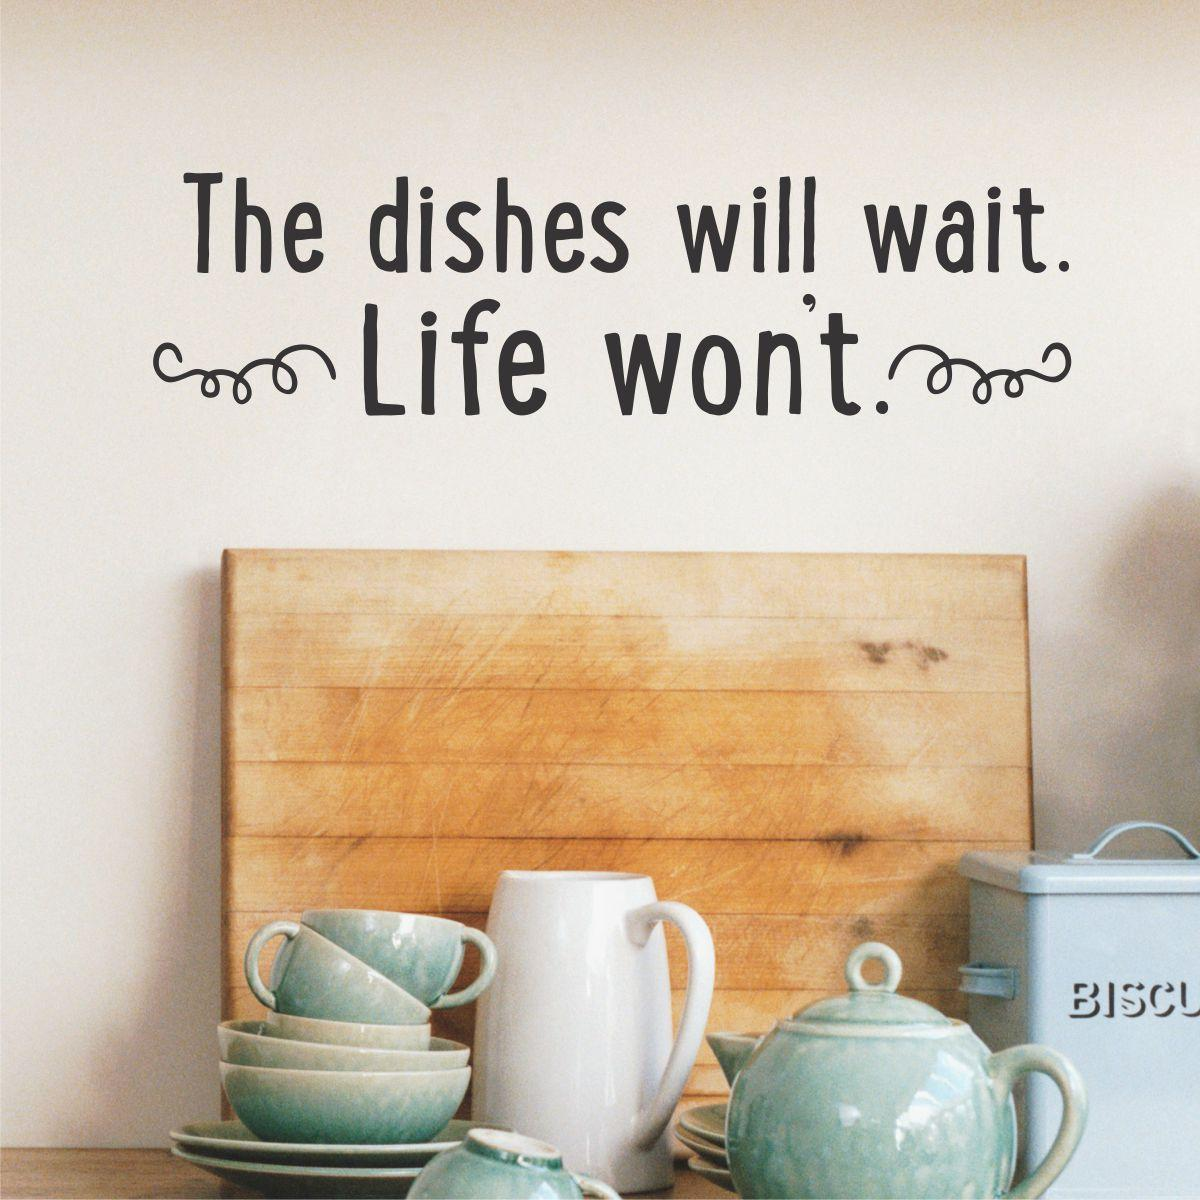 dishes will wait wall quotes u2122 decal